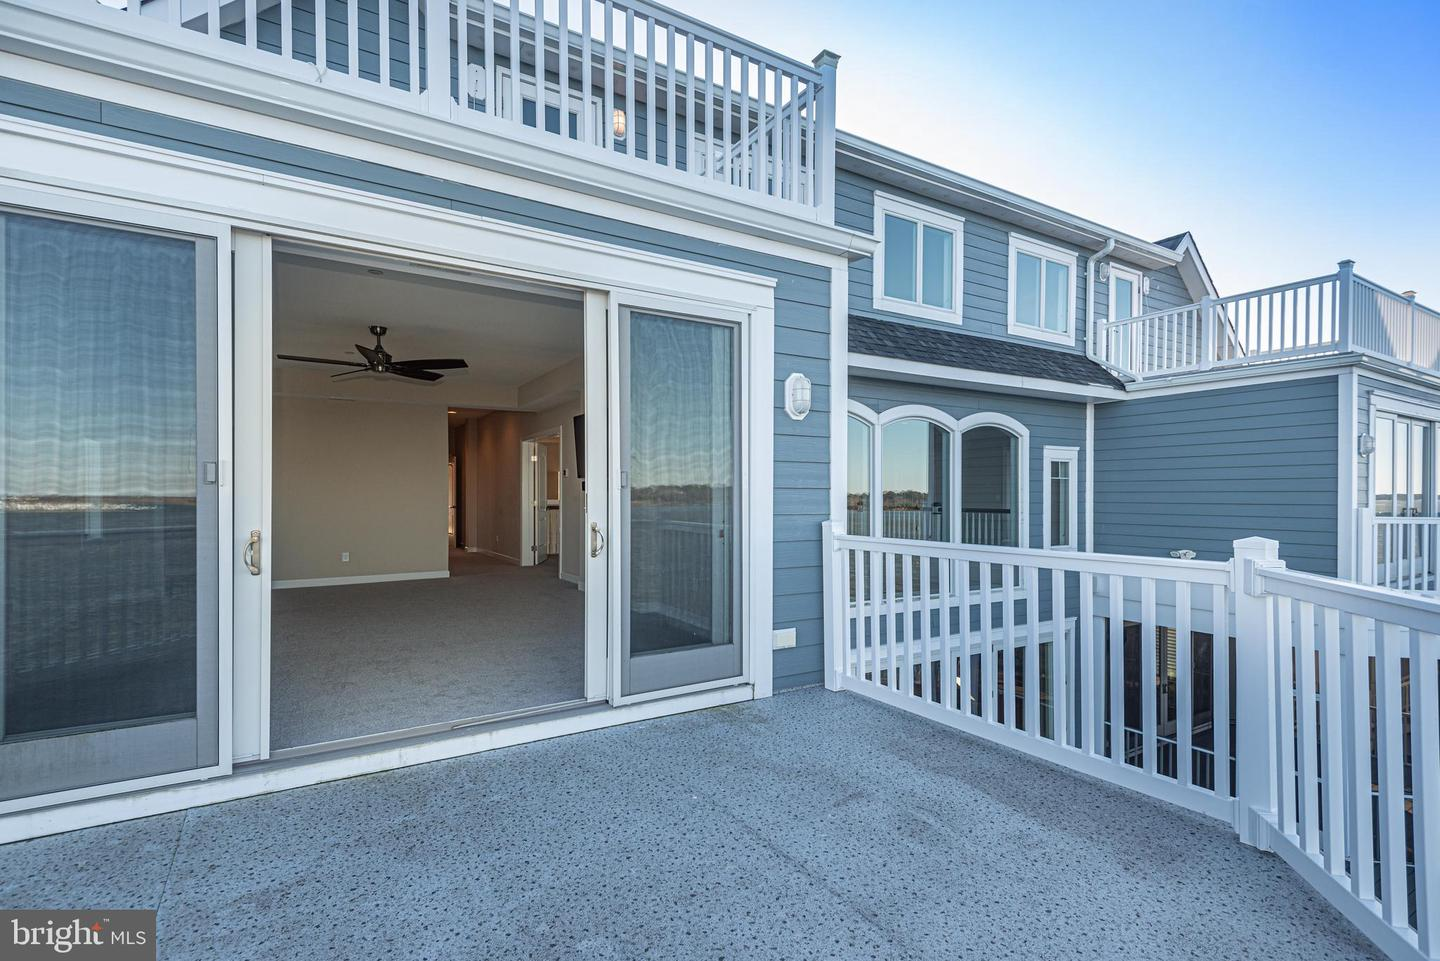 DESU154270-304005807141-2020-02-10-14-33-00 35 Inlet View | North Bethany, DE Real Estate For Sale | MLS# Desu154270  - Ocean Atlantic